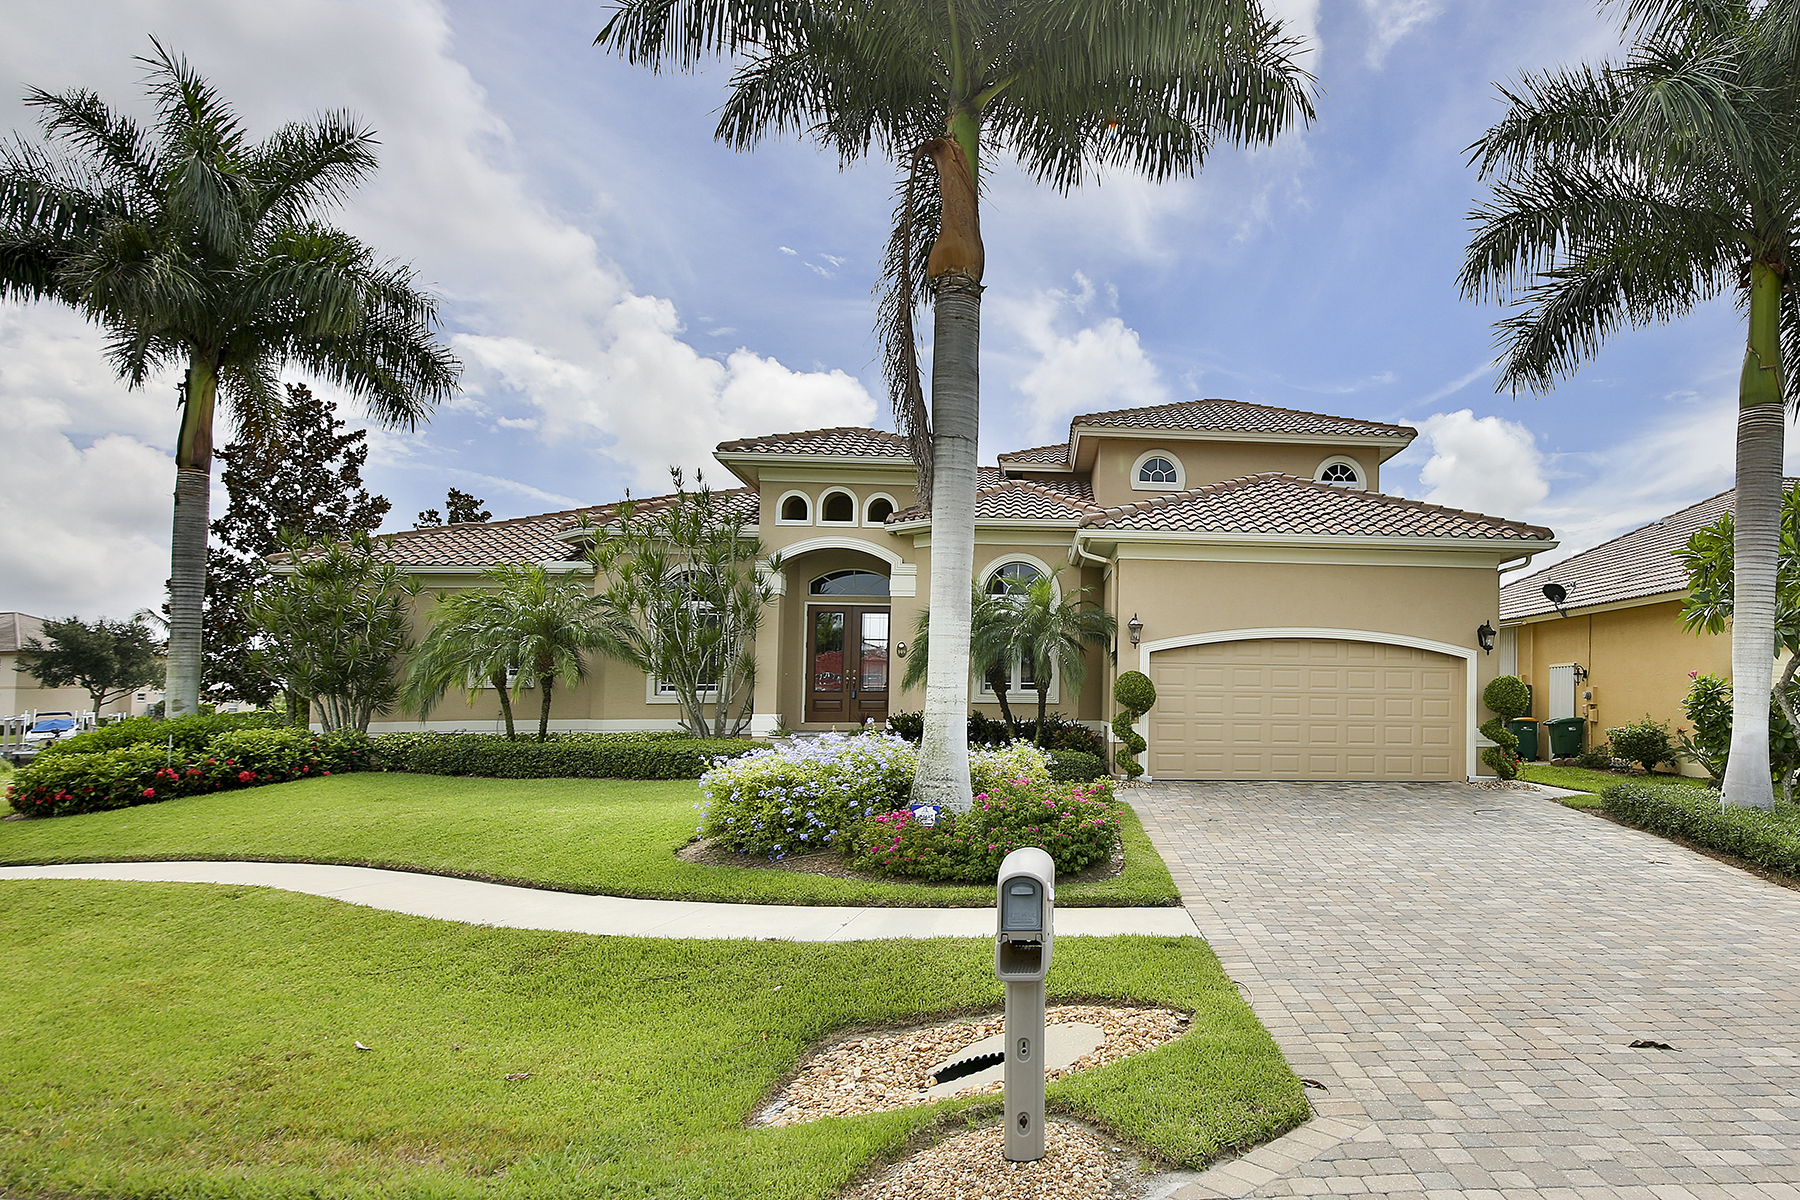 Single Family Home for Sale at MARCO ISLAND - SOUTH SEAS COURT 149 S Seas Ct Marco Island, Florida 34145 United States